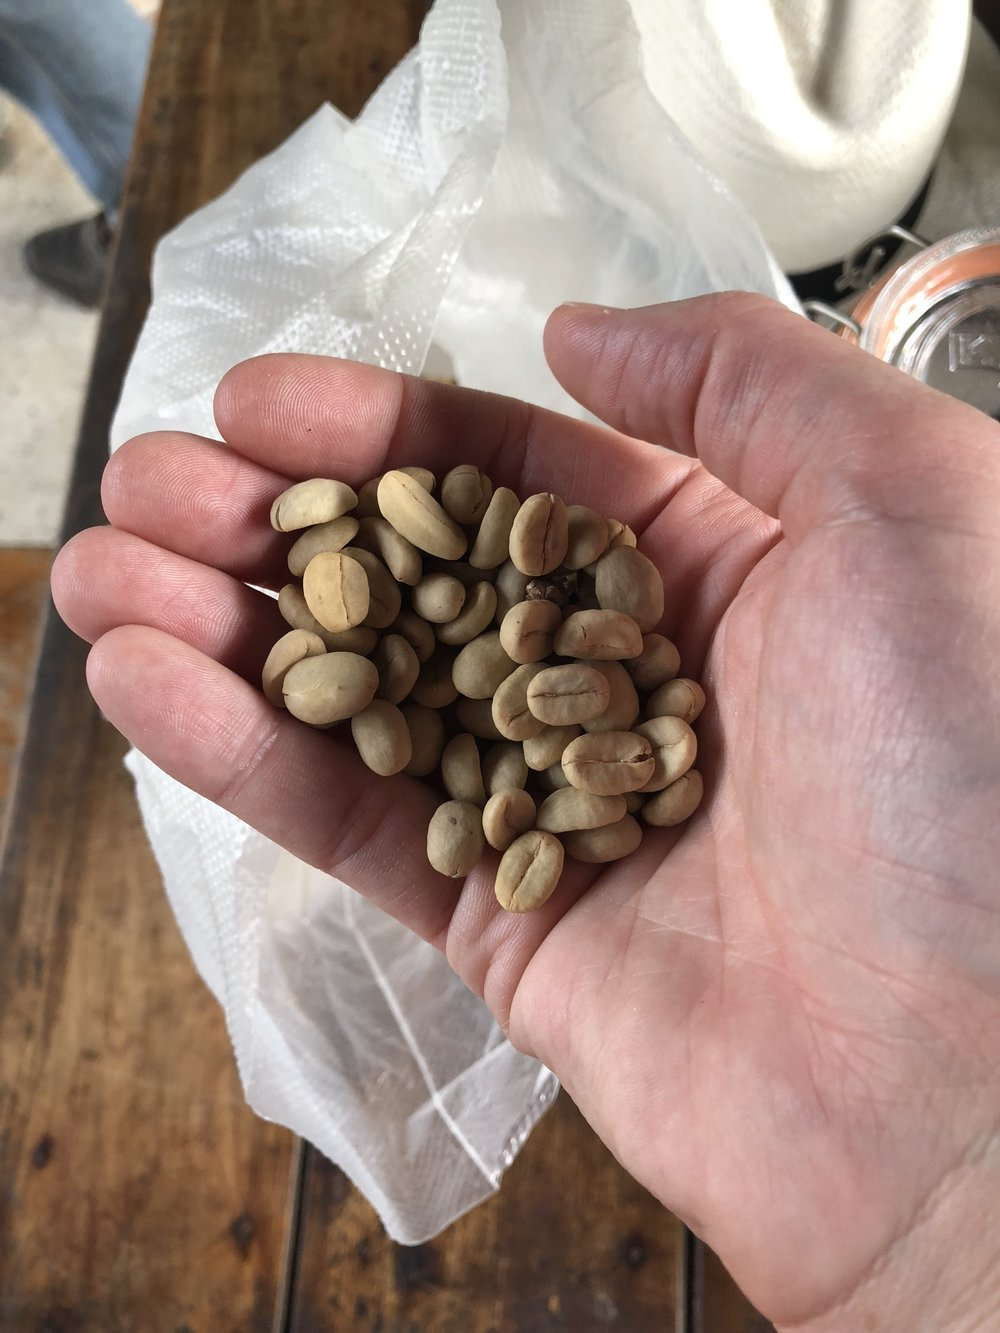 Green coffee beans with skins removed ready for roasting!